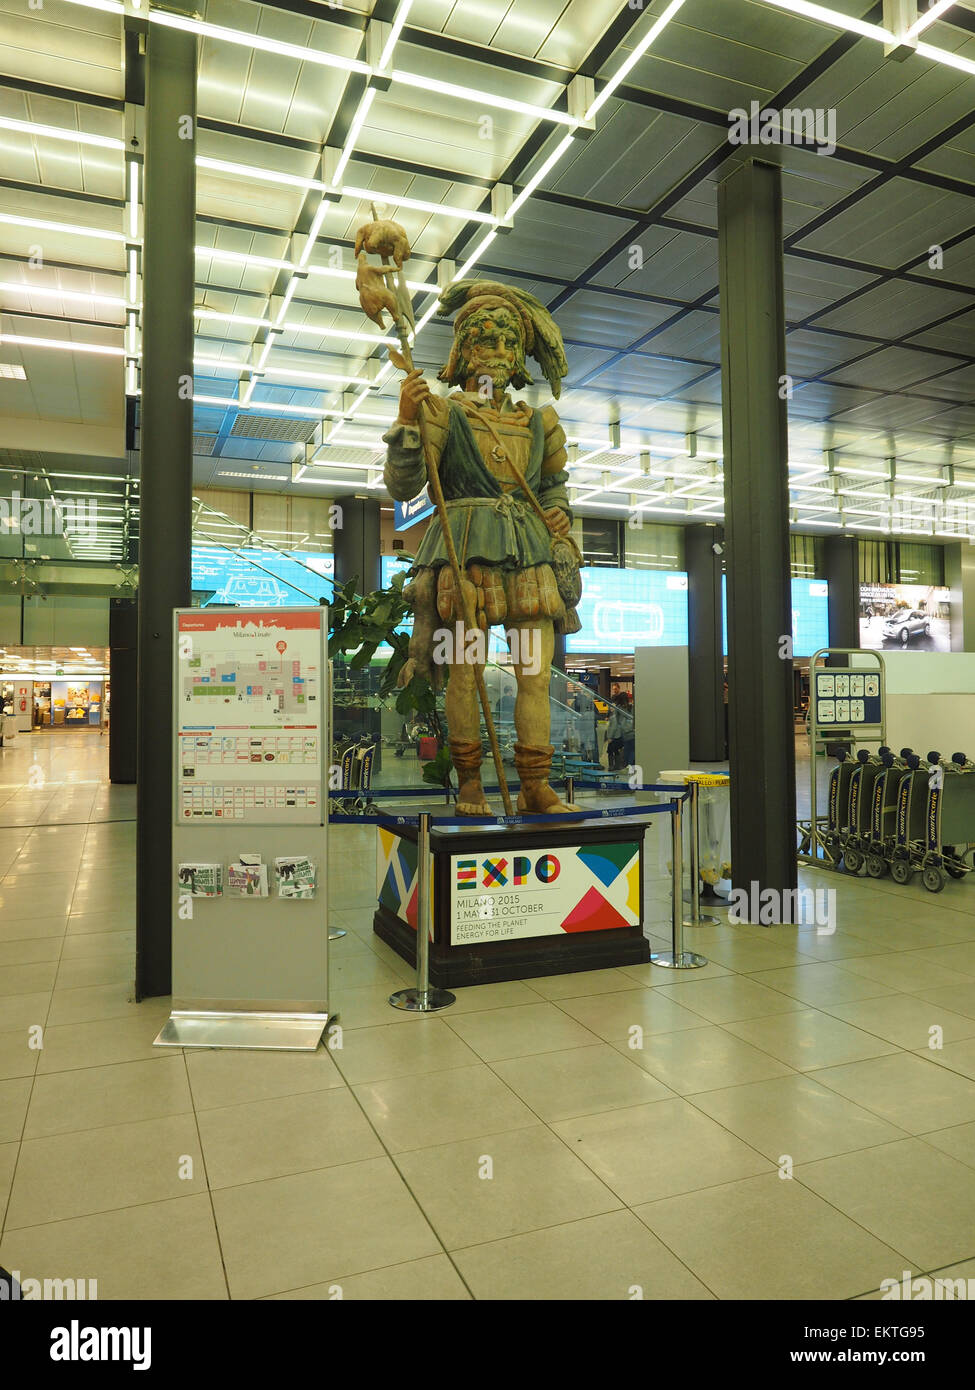 Linate airport, Expo 2015, Milan, Lombardy, Italy, Europe - Stock Image